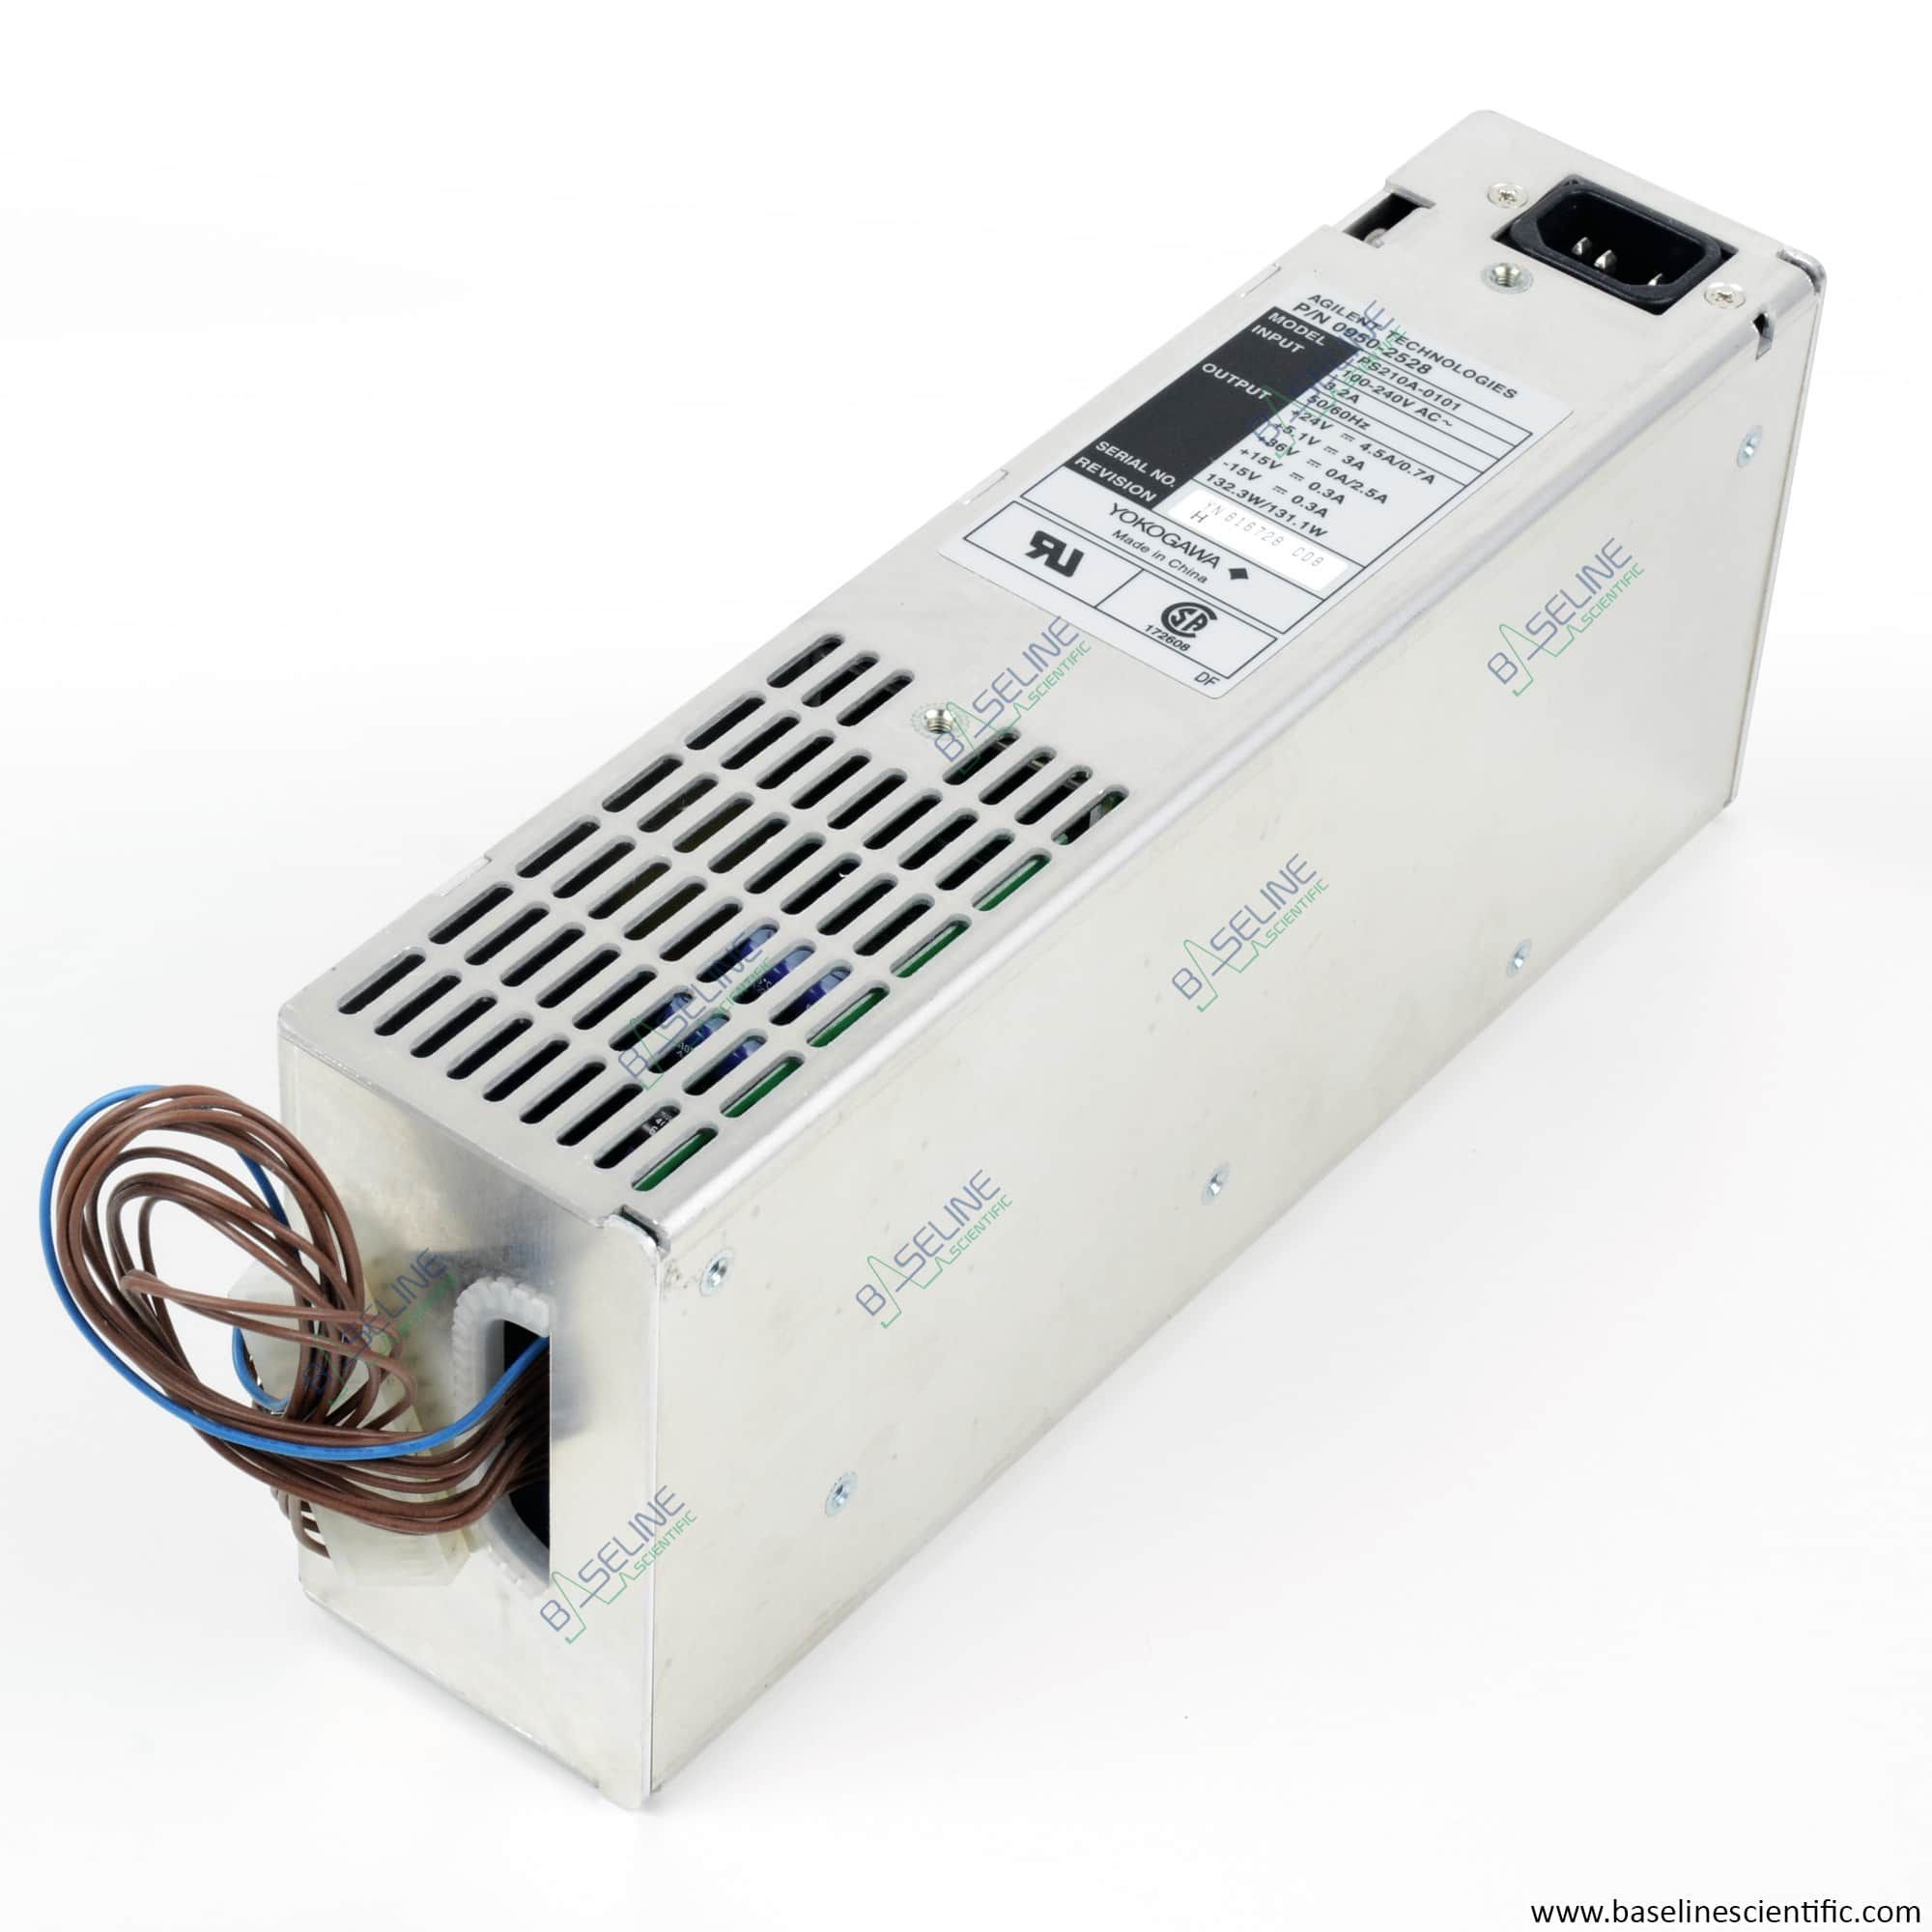 Refurbished Agilent HP 1100 1200 0950-2528 HPLC Power Supply with ONE YEAR WARRANTY